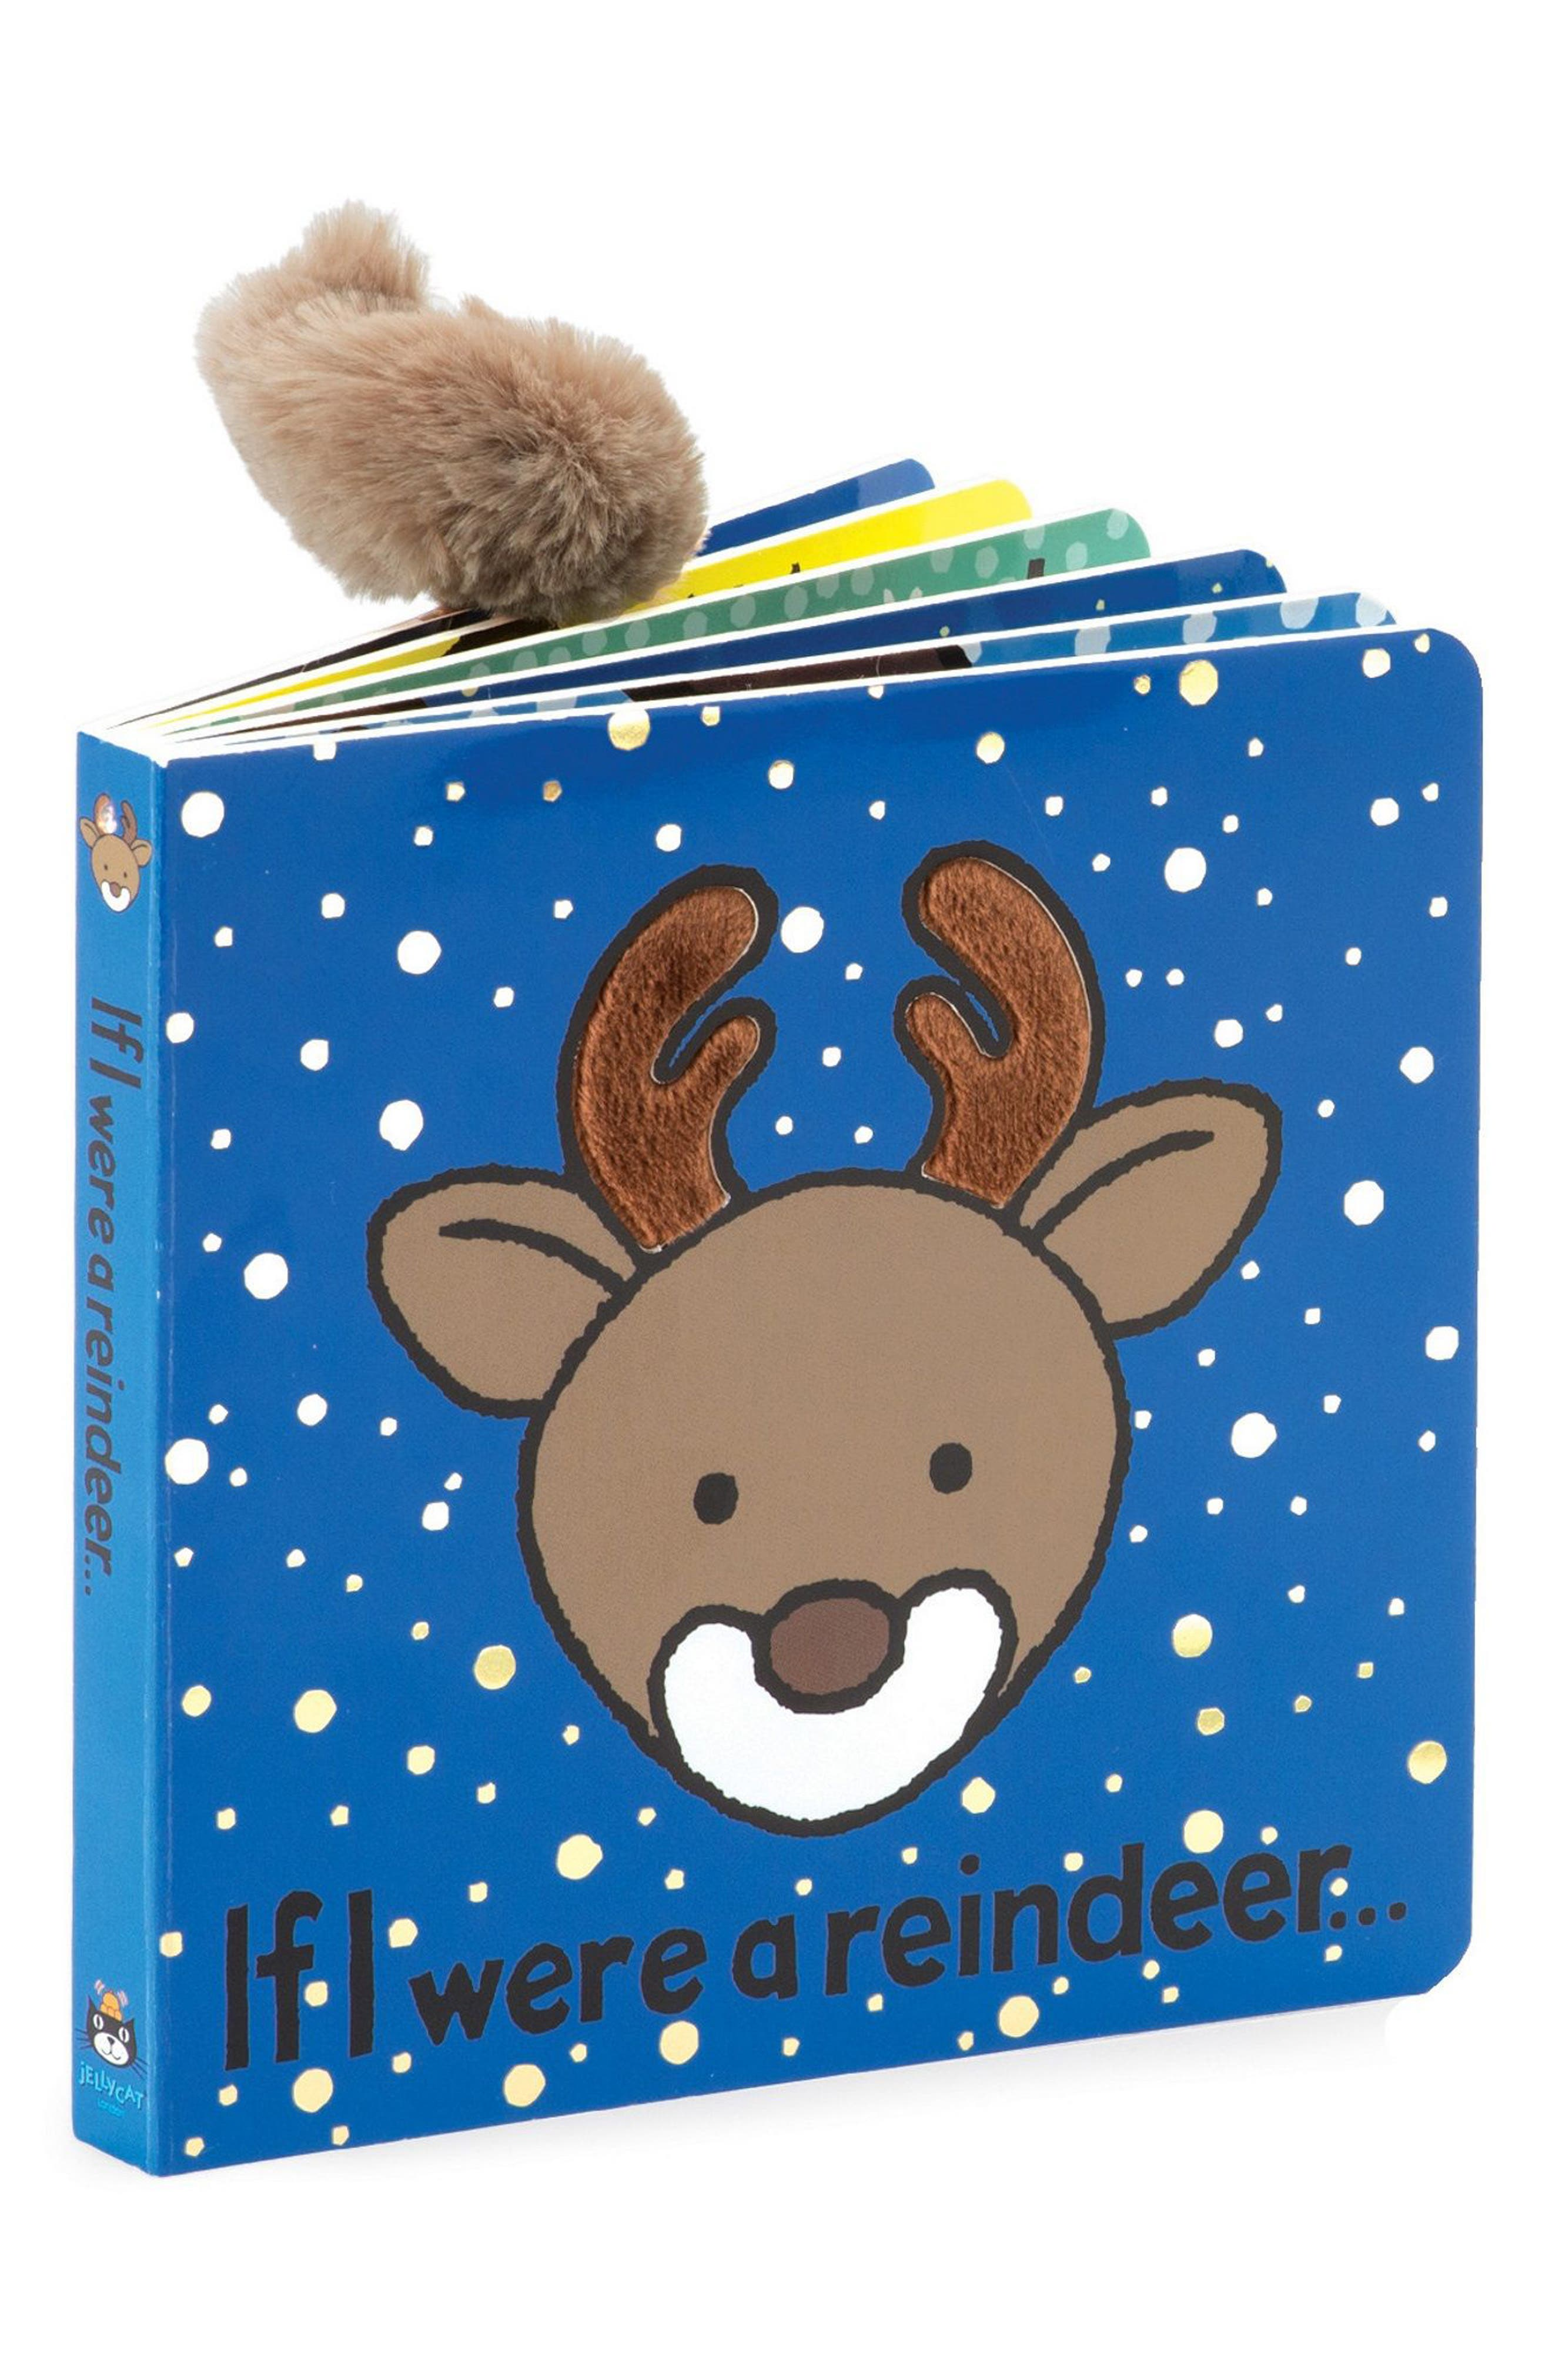 Alternate Image 1 Selected - Jellycat 'If I Were a Reindeer' Board Book